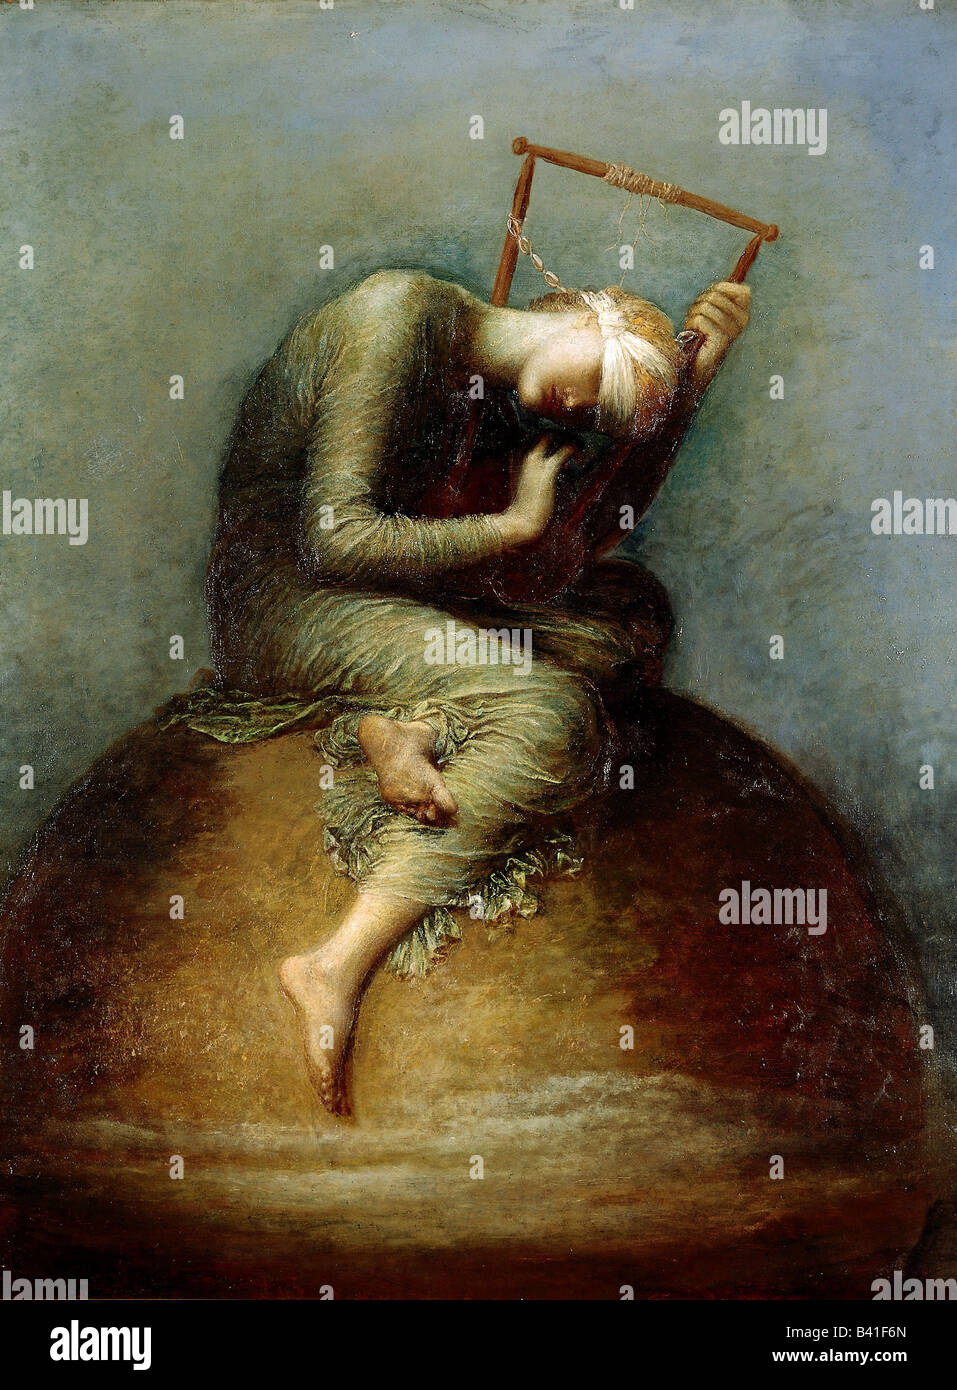 "fine arts - Watts, George Frederic (1817 - 1904), painting, ""Hope"", 1885, oil on canvas, 141 x 110 cm, Tate Gallery, Stock Photo"